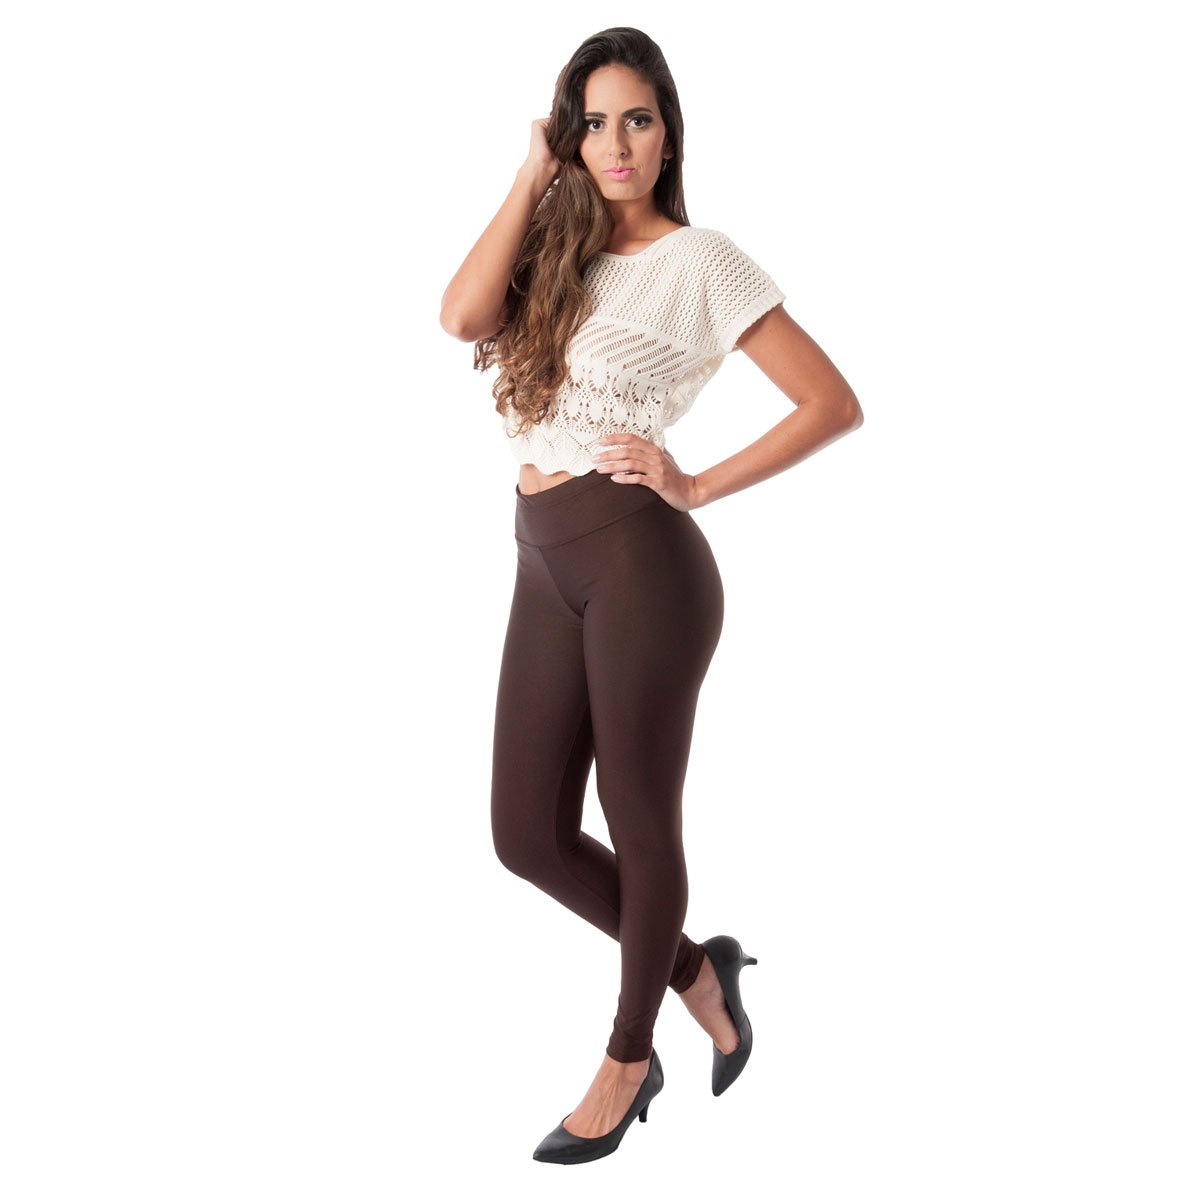 Legging Marrom Legging Modas Modas Shop Legging Marrom Shop wgwxHS